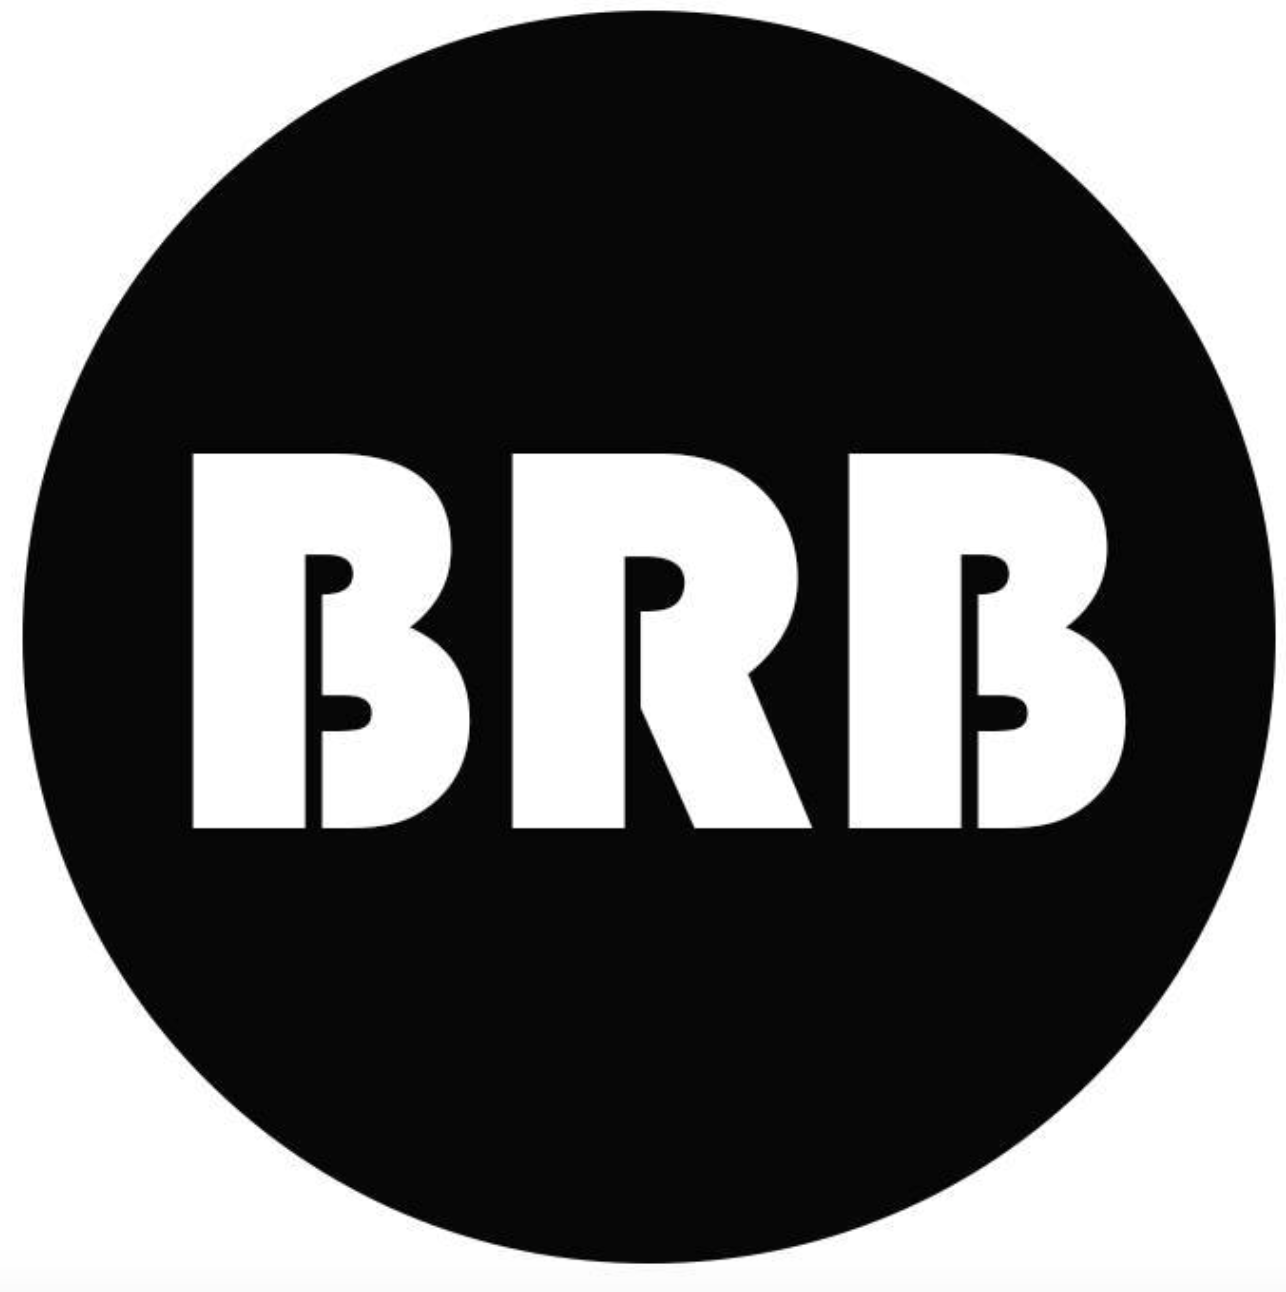 BRB: Brixton Review of Books